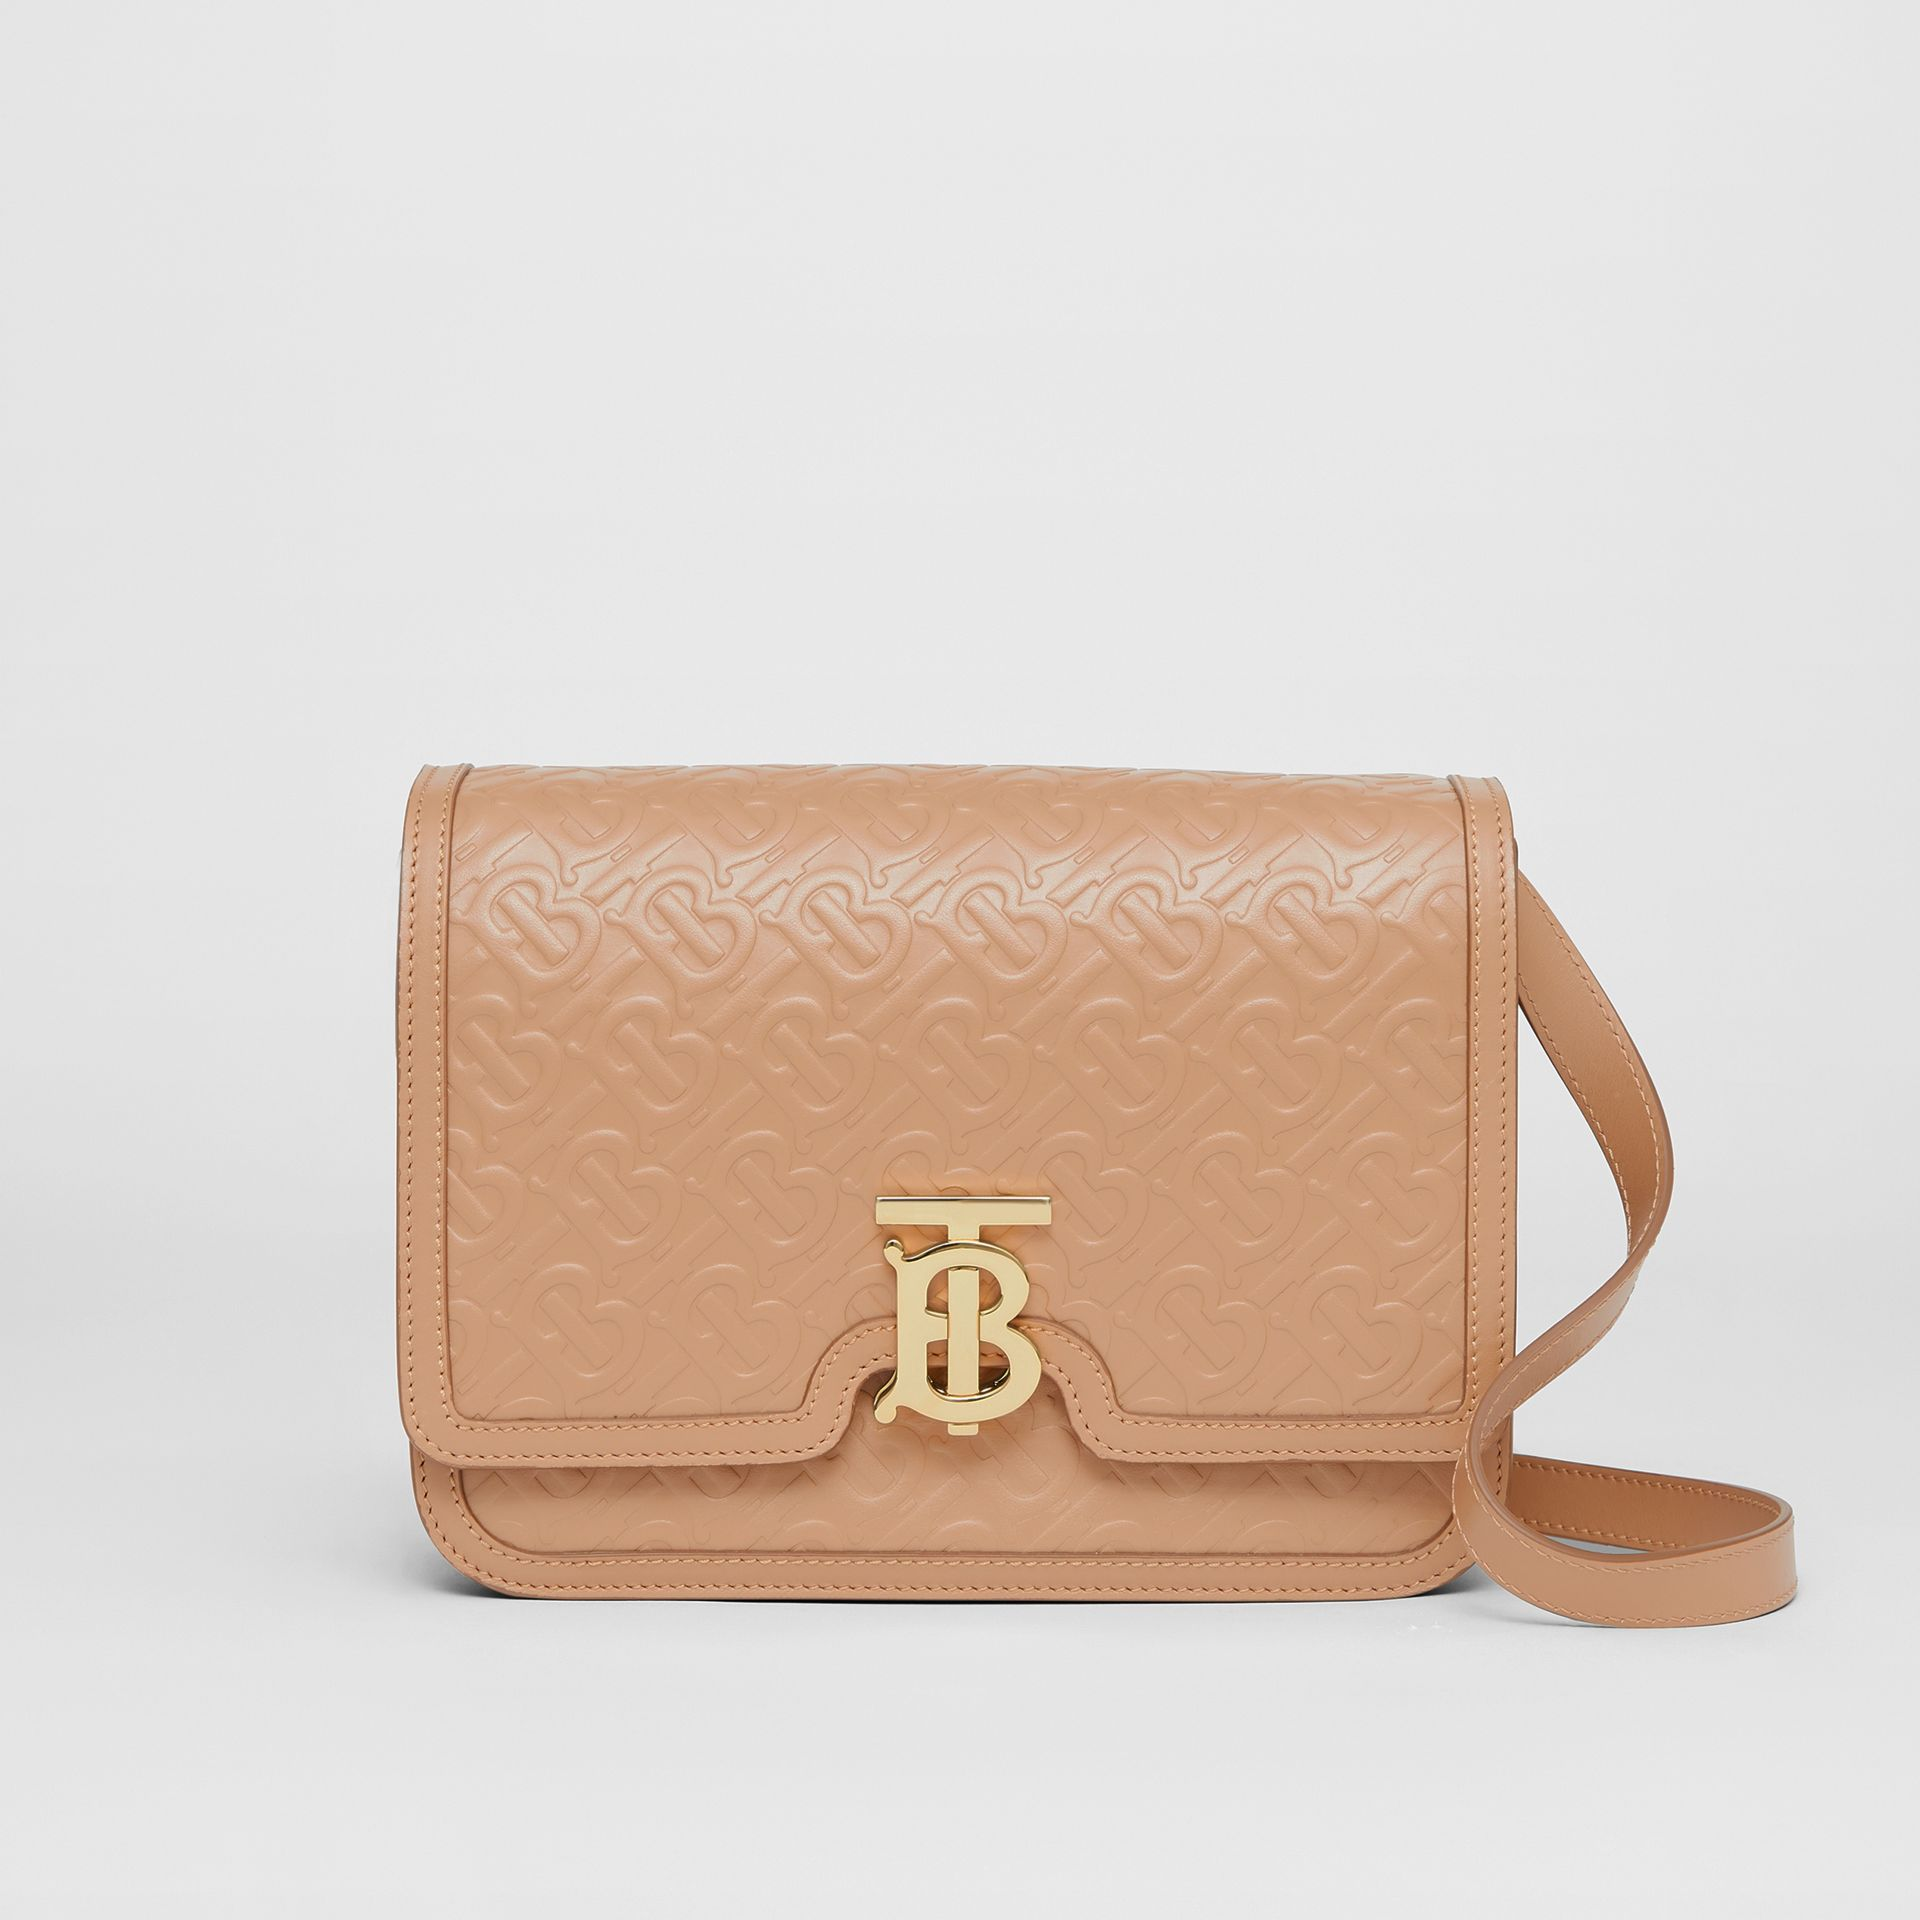 Medium Monogram Leather TB Bag in Light Camel - Women | Burberry United Kingdom - gallery image 0